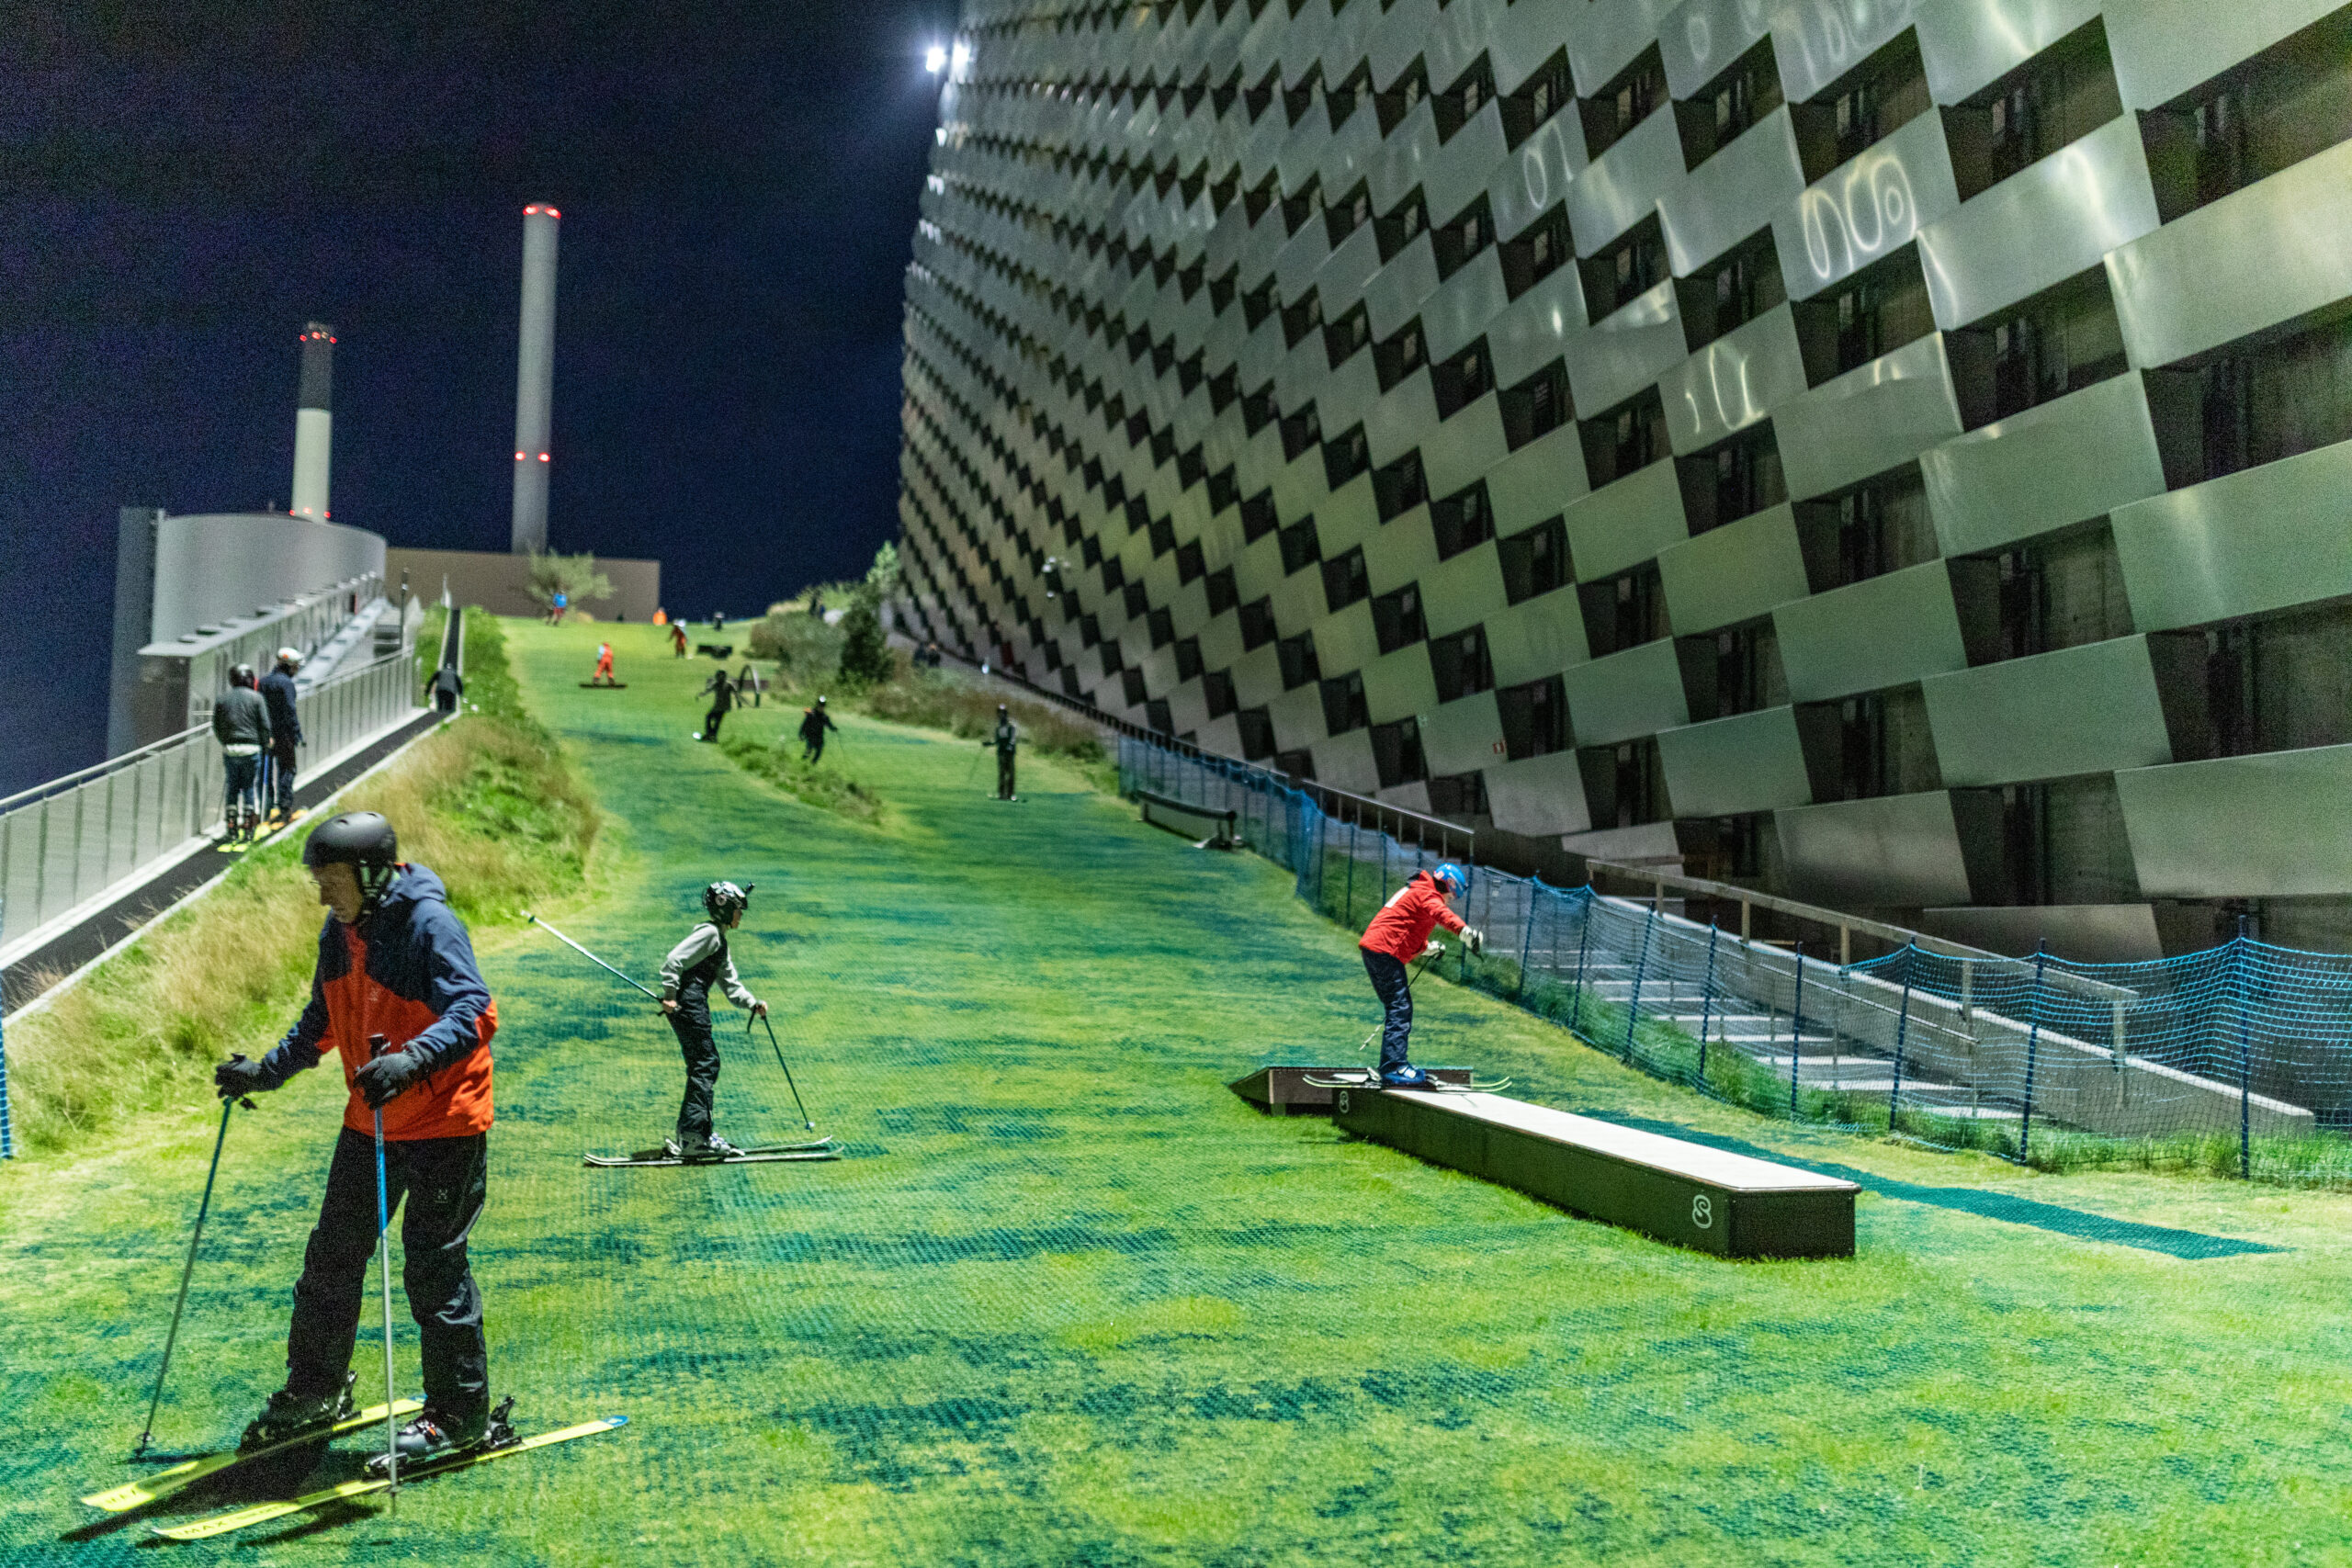 CopenHill power plant ski slope